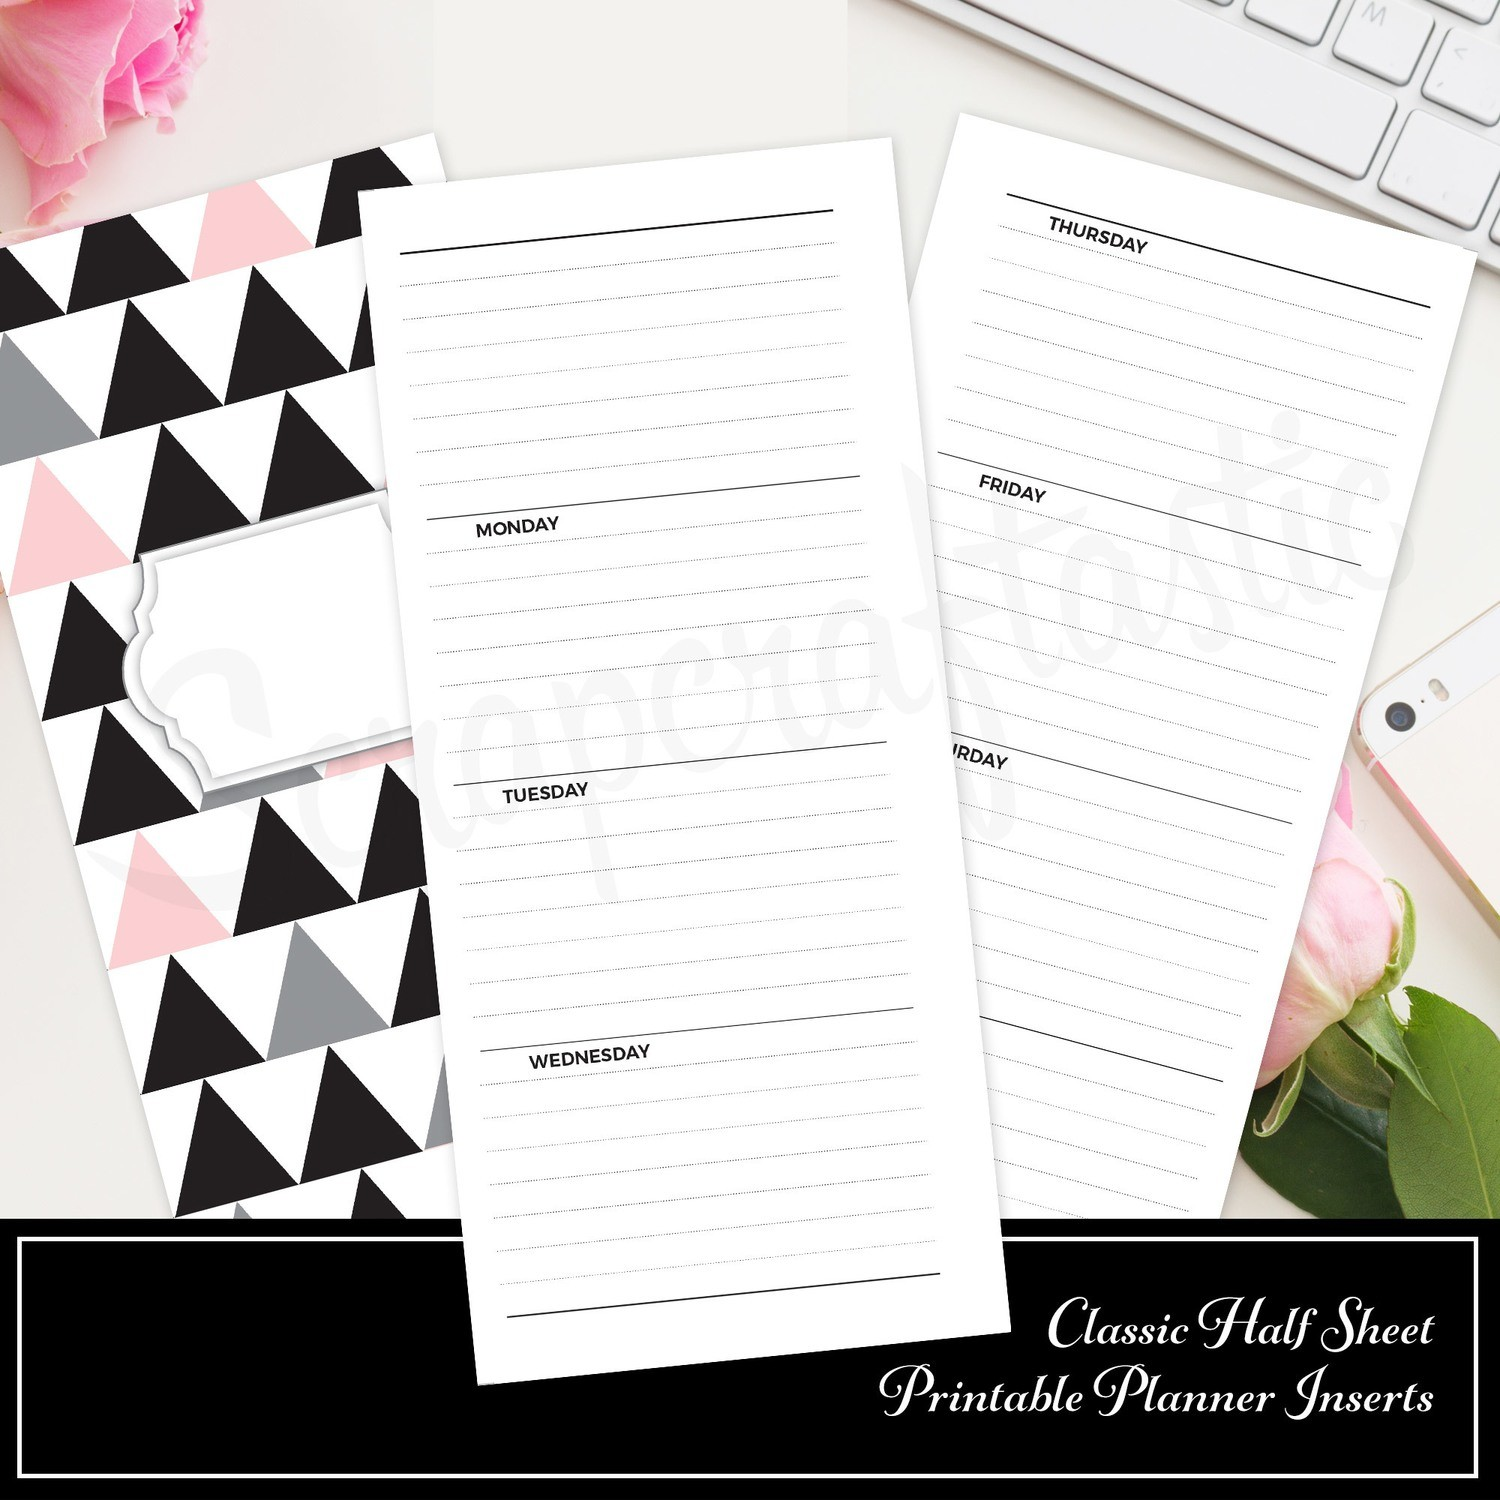 CLASSIC HALF SHEET - Horizontal Lined Undated Weekly Printable Planner Insert